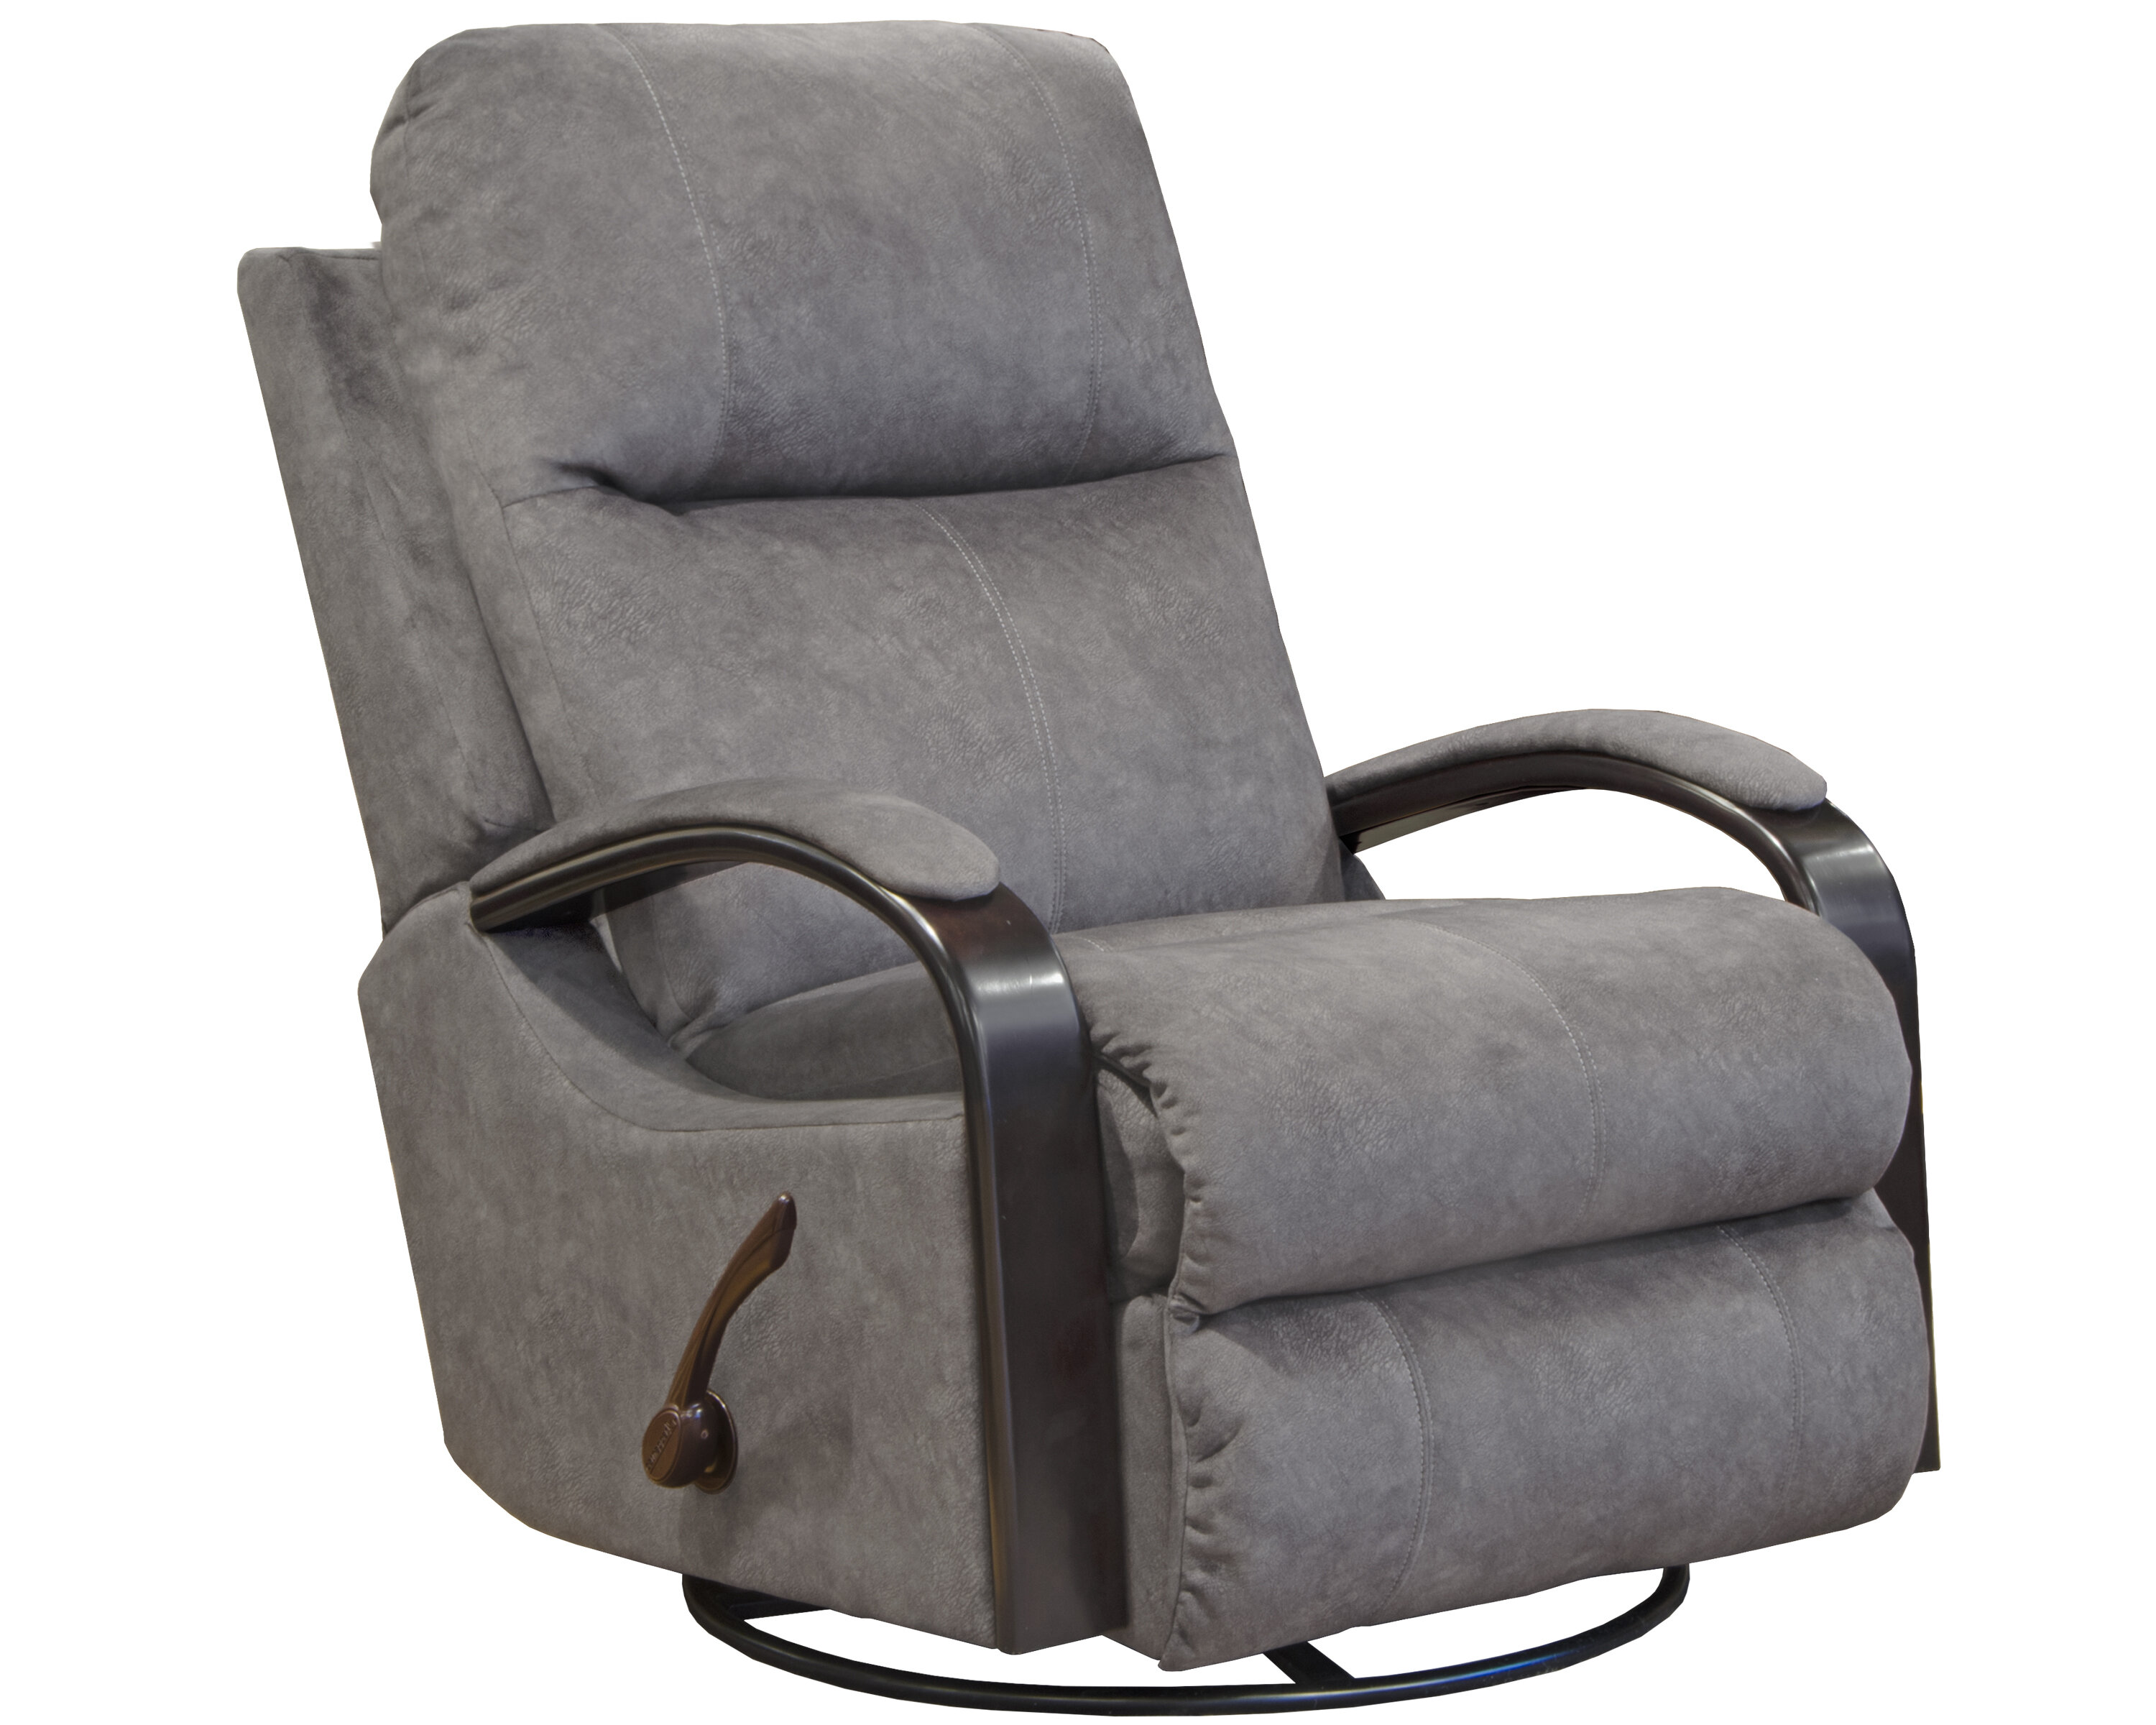 Niles Manual Swivel Glider Recliner on